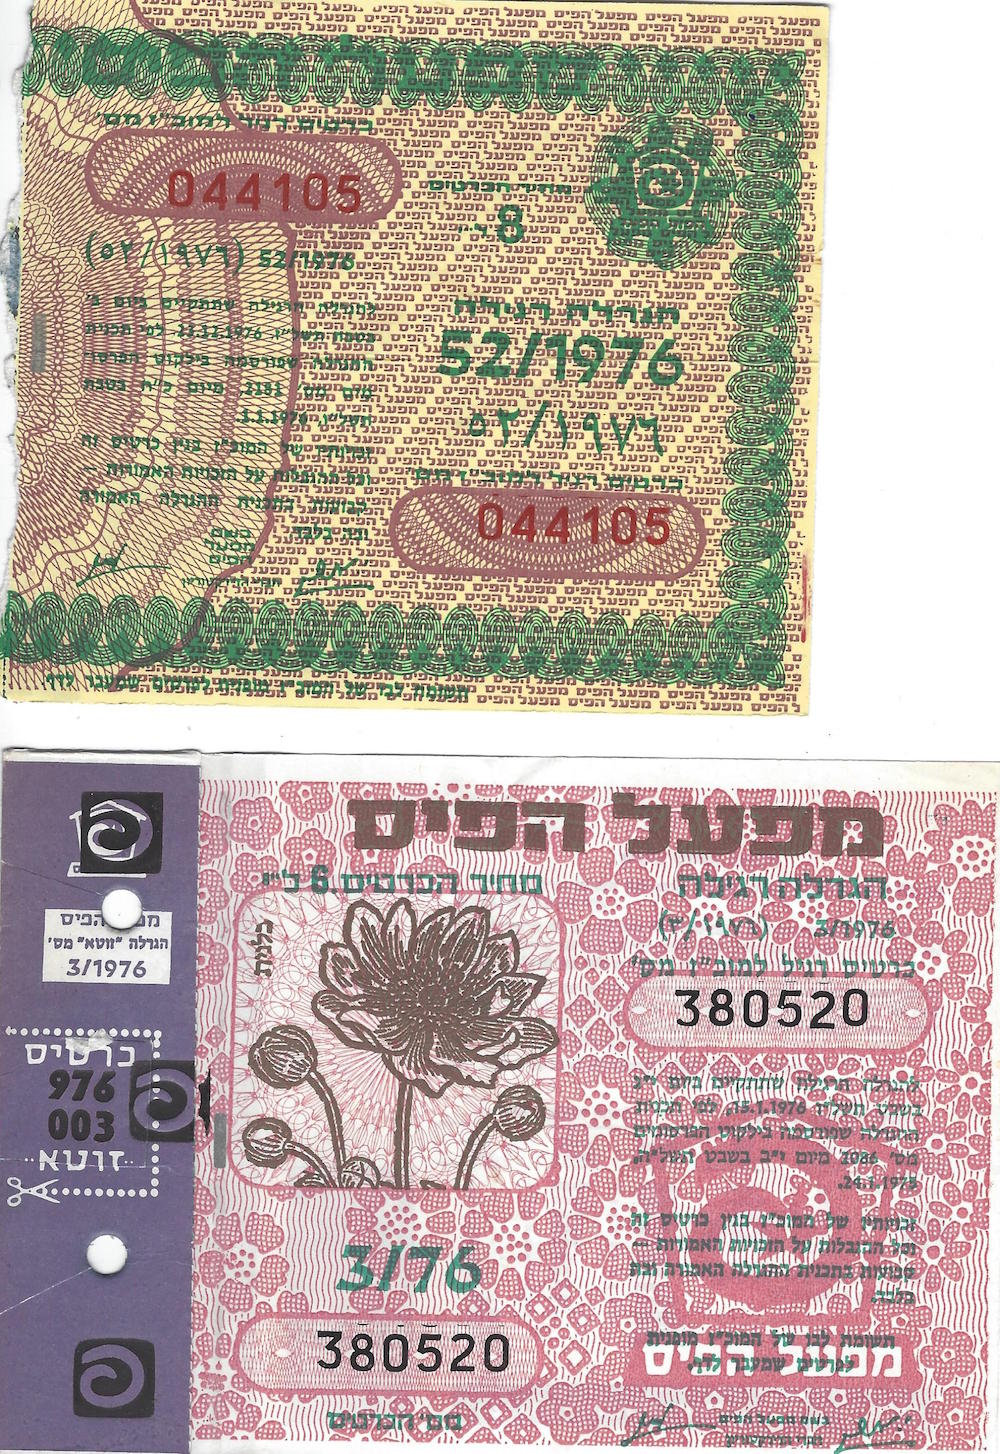 Lot 5 - SPECIAL OFFERS SPECIAL OFFERS -  Negev Holyland SPECIAL OFFER COLLECTIONS